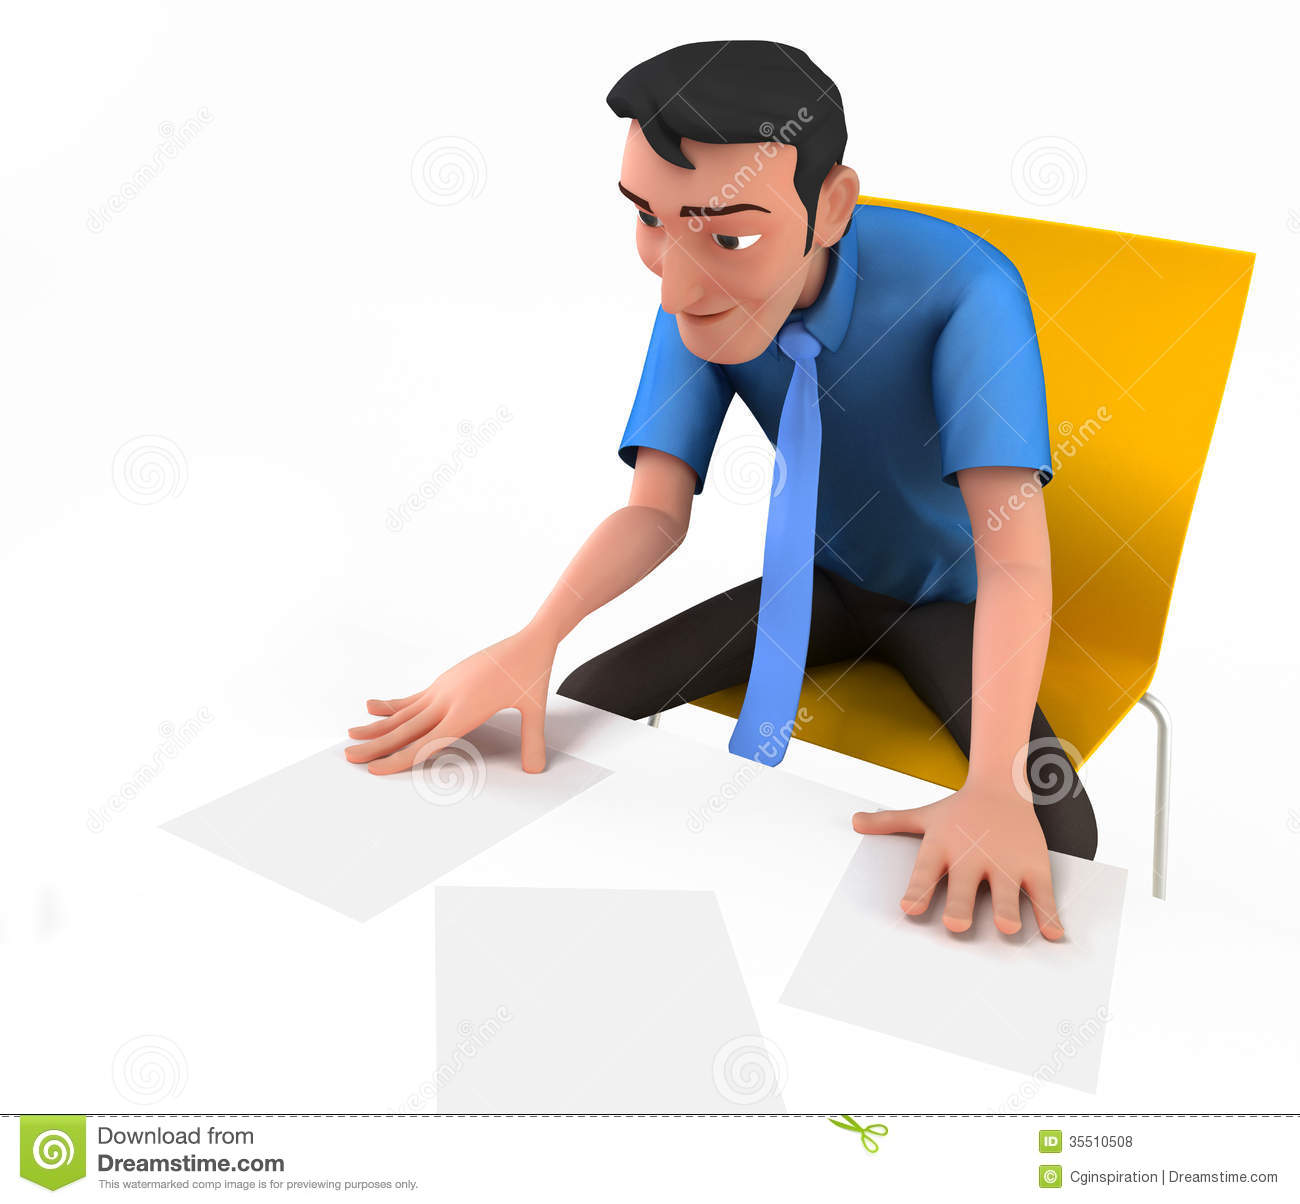 Business Report Clipart - Clipart Kid